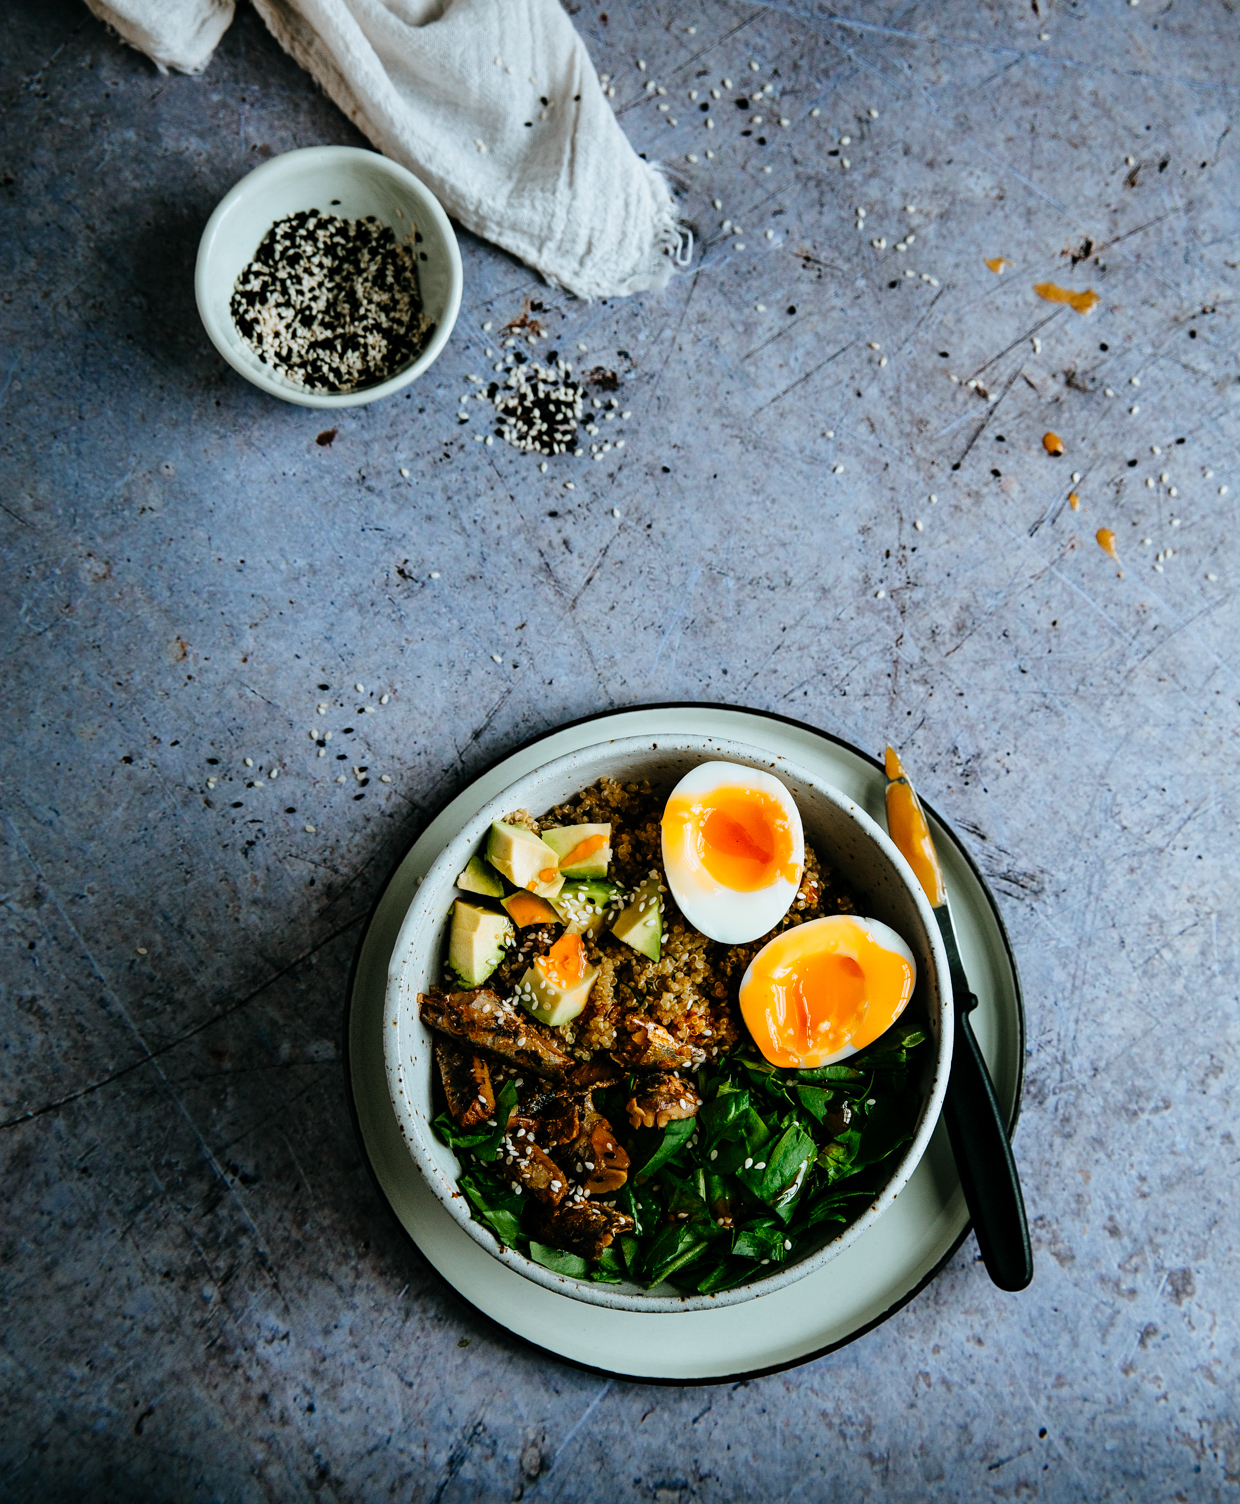 Sardine, avocado & spinach quinoa bowl